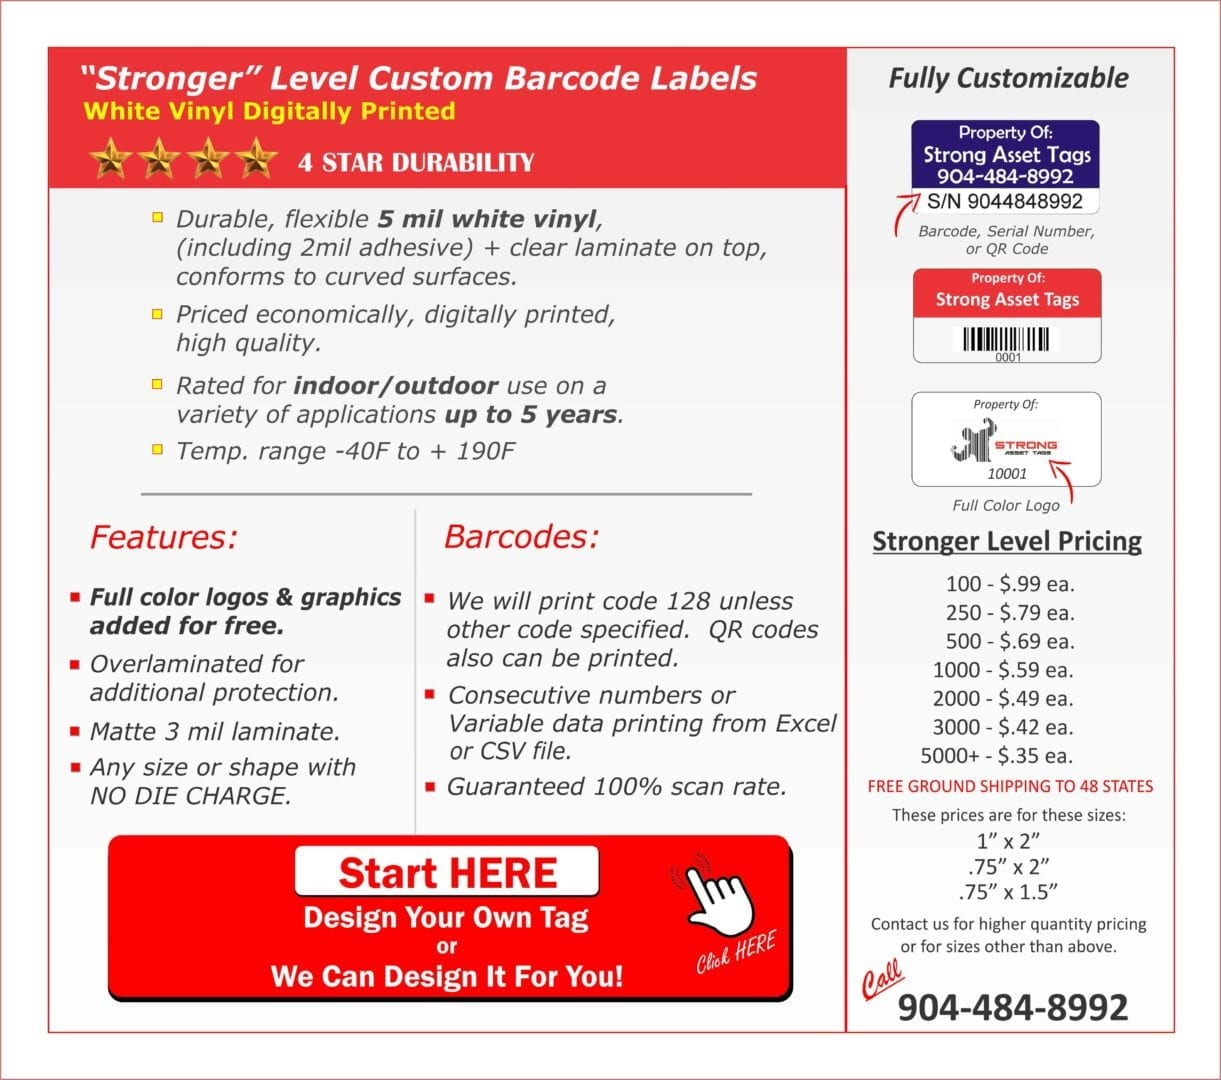 We have the strongest custom barcode labels.